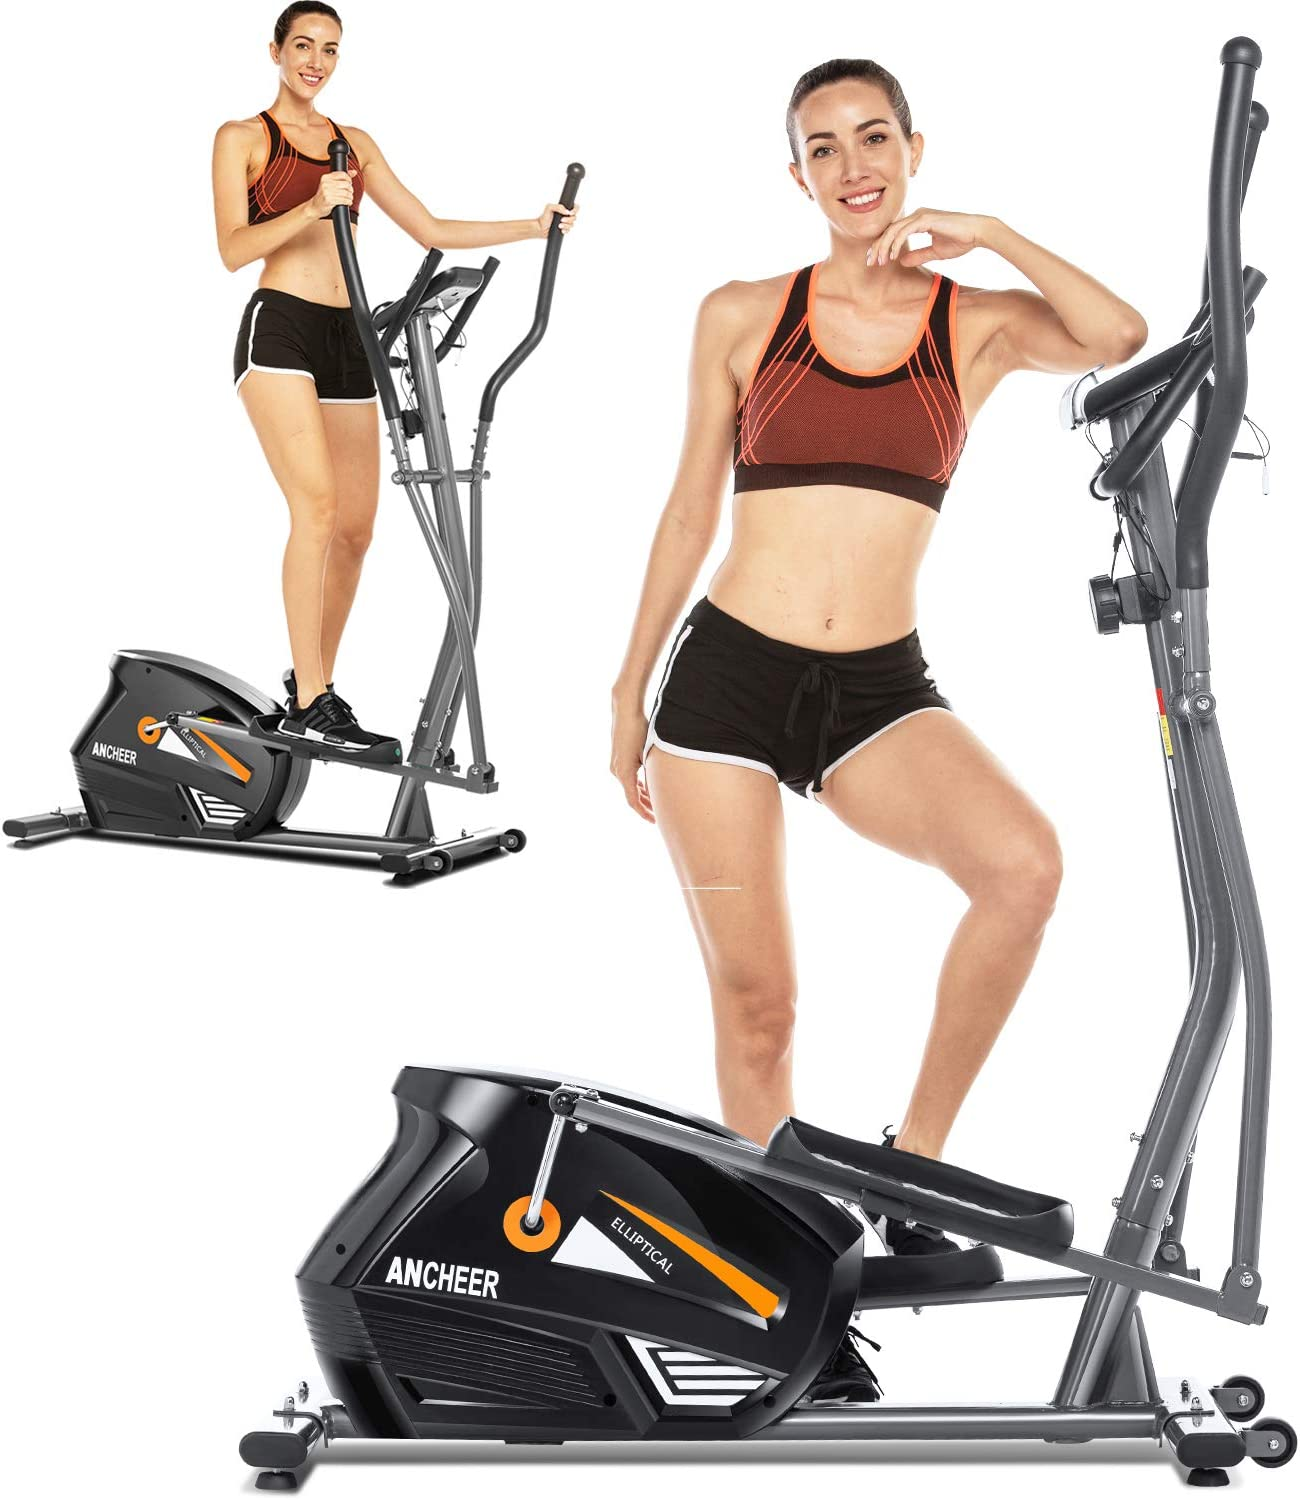 Best Under Desk Elliptical Reviews: Your Training Made Simple